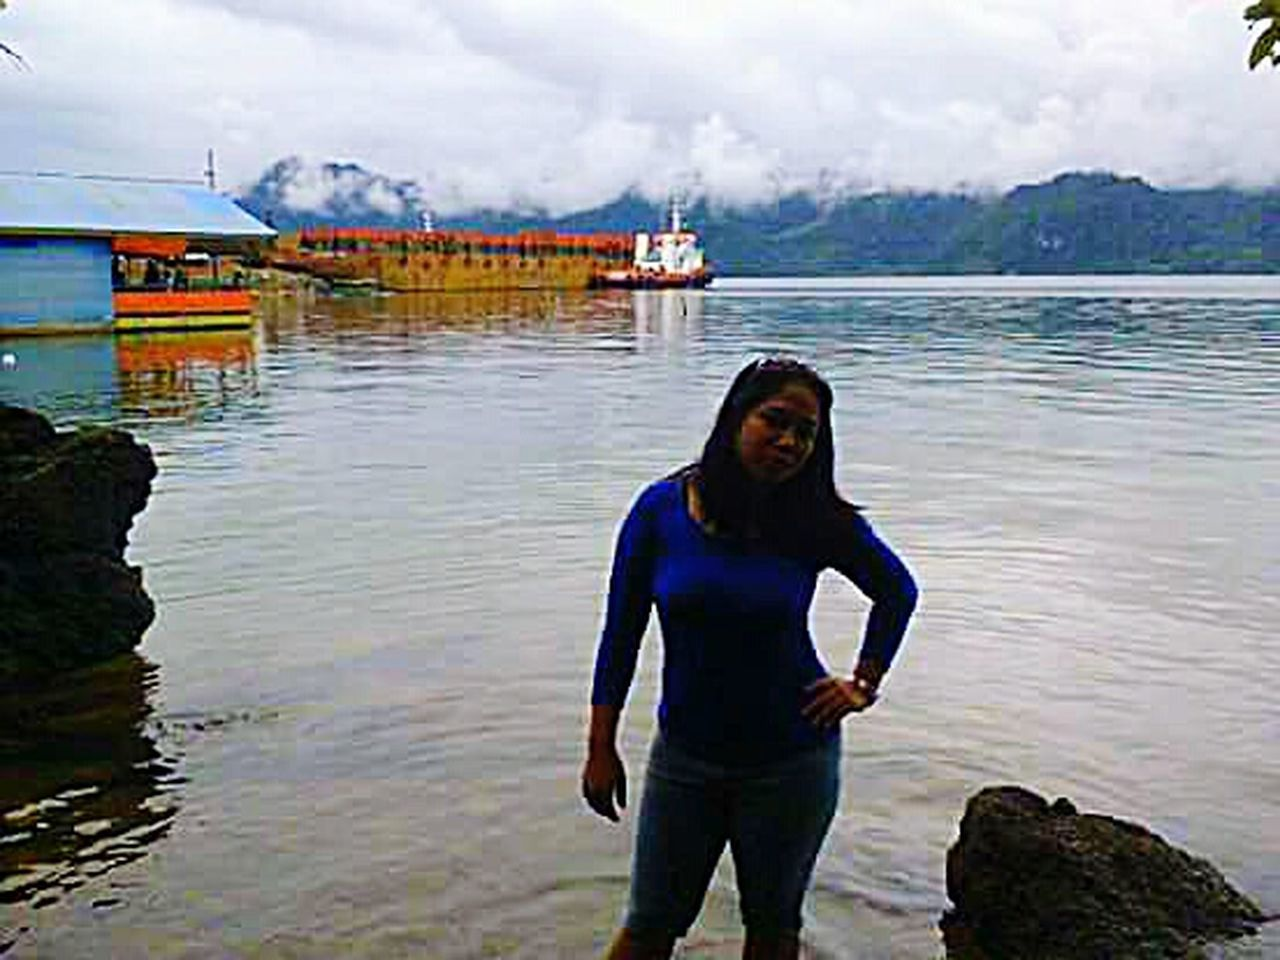 The Great Outdoors With Adobe Sea And Sky Sea View Sea Selfie ✌ My Favorite Photo EyeEm Best Shots House On The Sea Tugboat Tugboats On The Thames Mining Industry Harbour Harbour View MiningEyeEm Nature Lover That's Me Island EyeEmIndonesiaKu Mining Exploration Miningtown MiningIndonesia Central Sulawesi Kolonodale